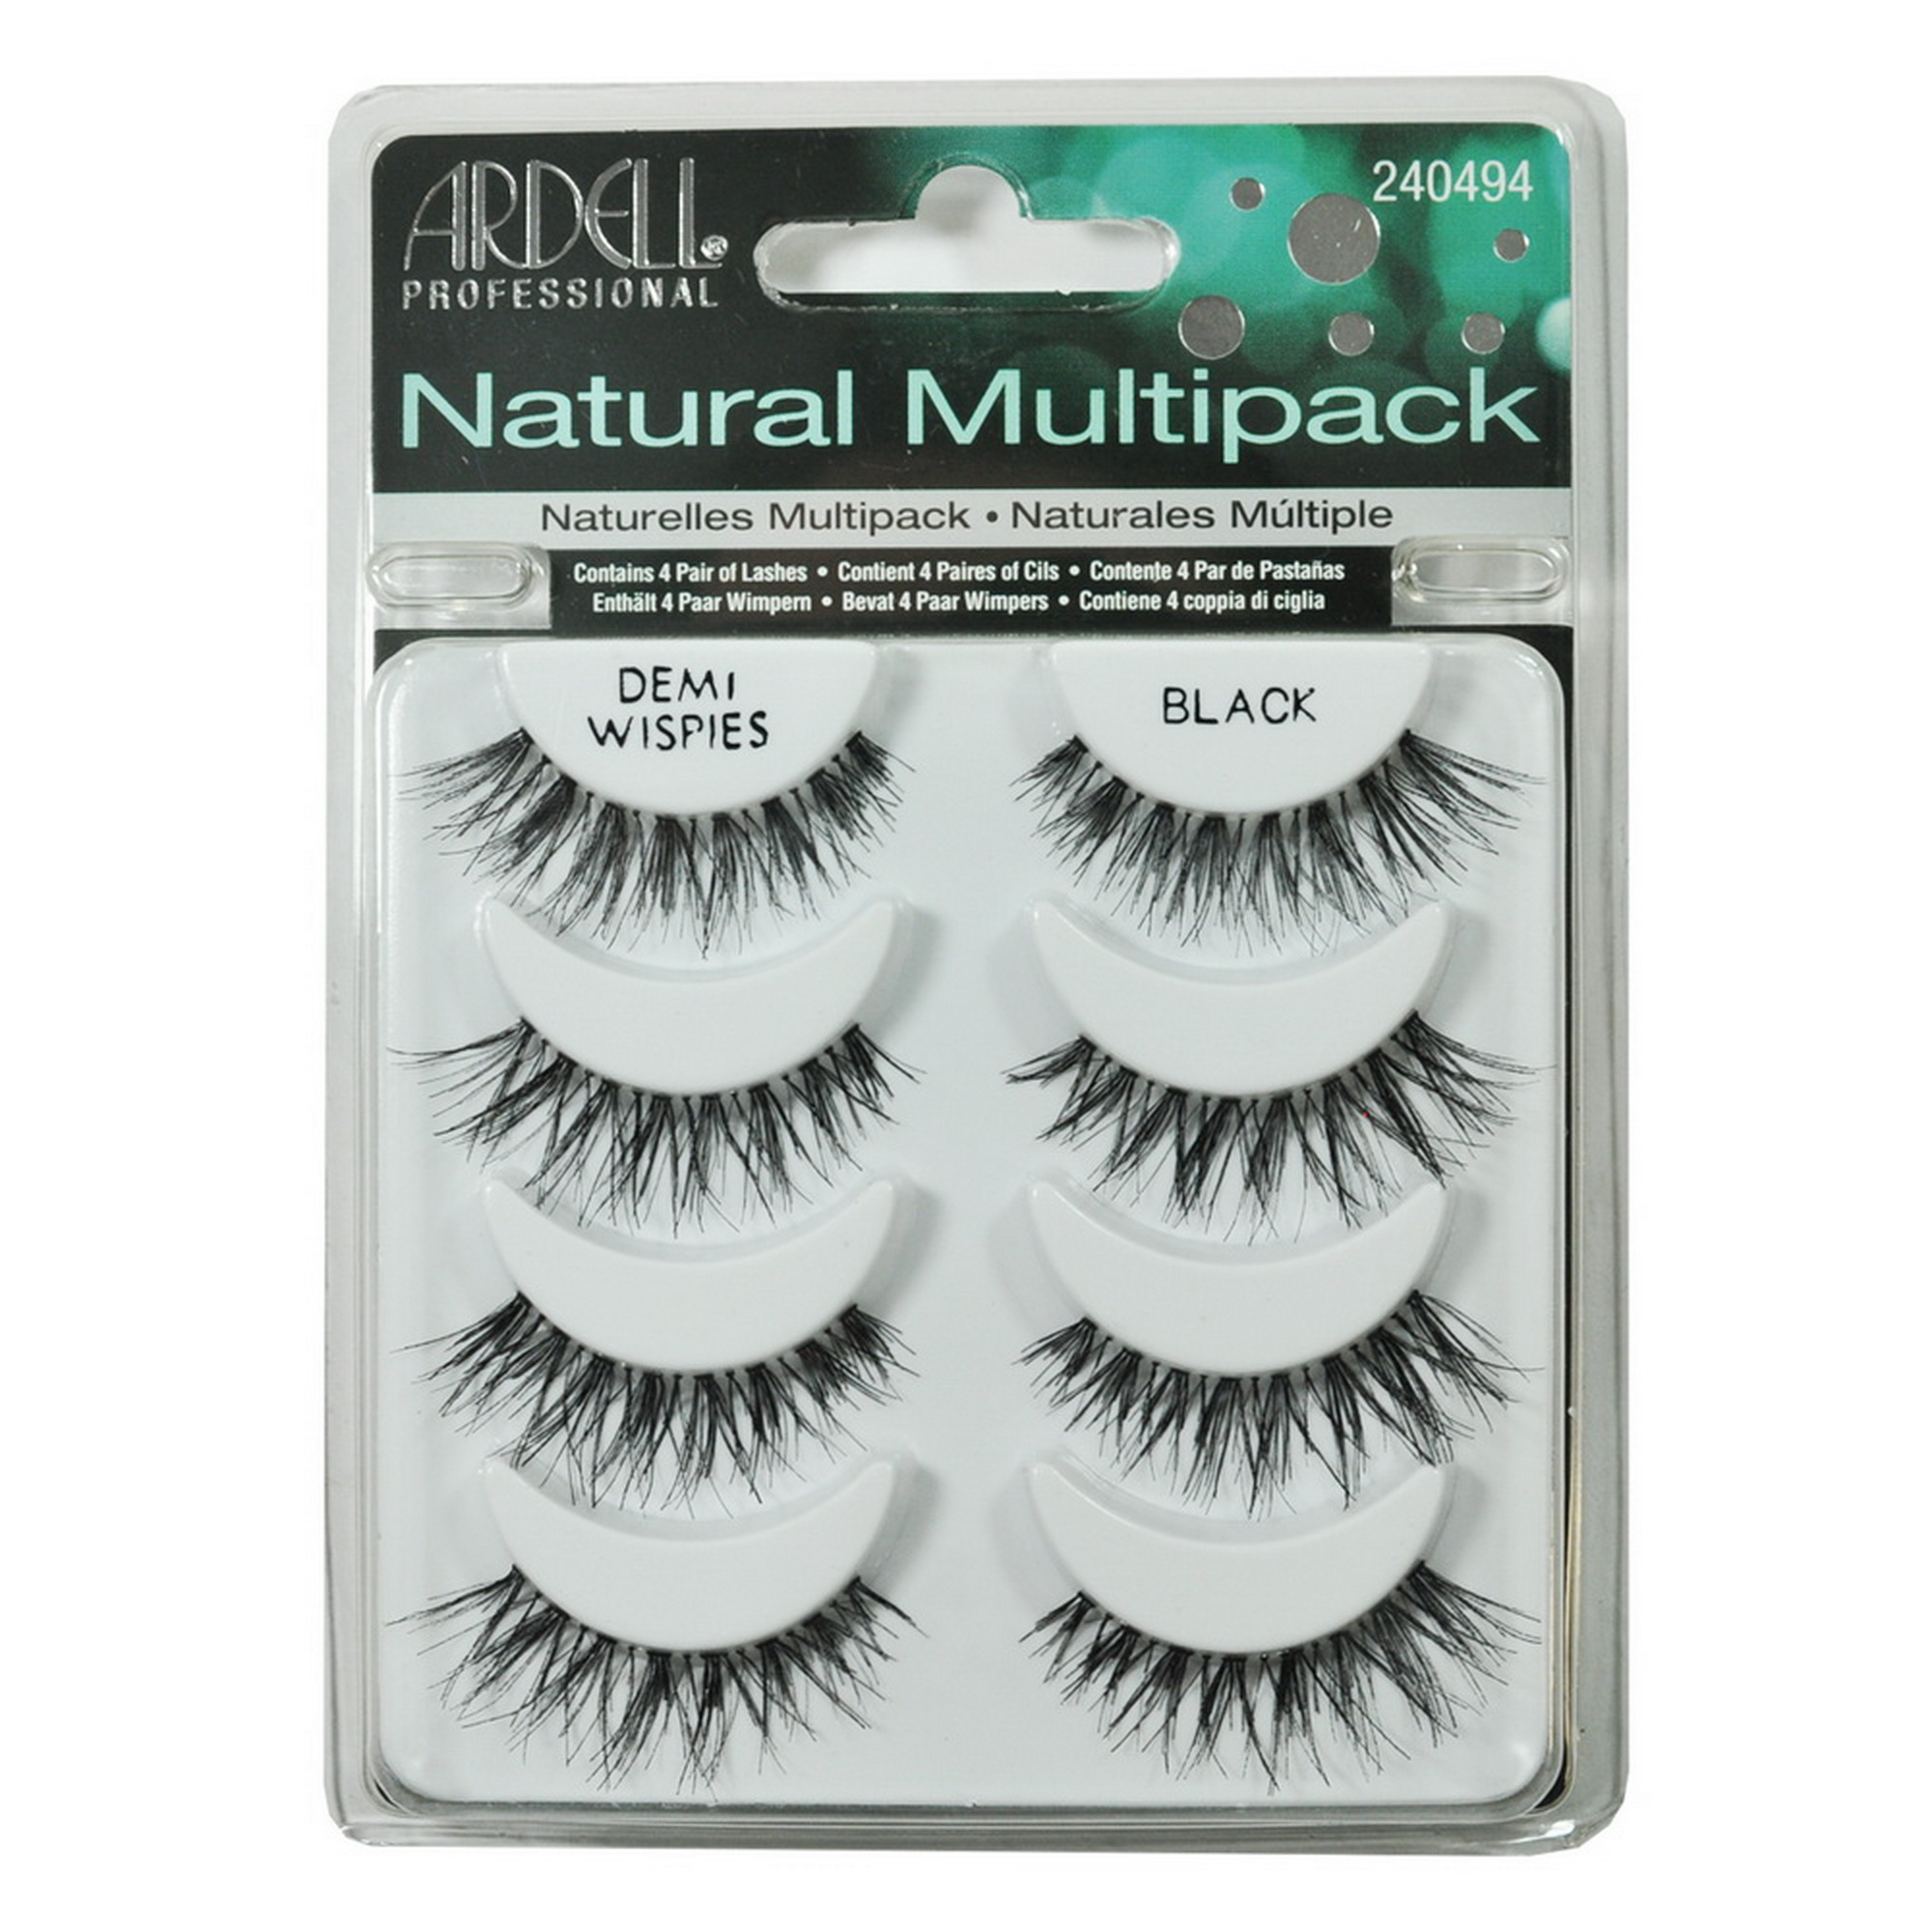 Beautychain False Eyelashes MultiPack Demi Wispies Black 4 Pairs Natural Fake Lashes